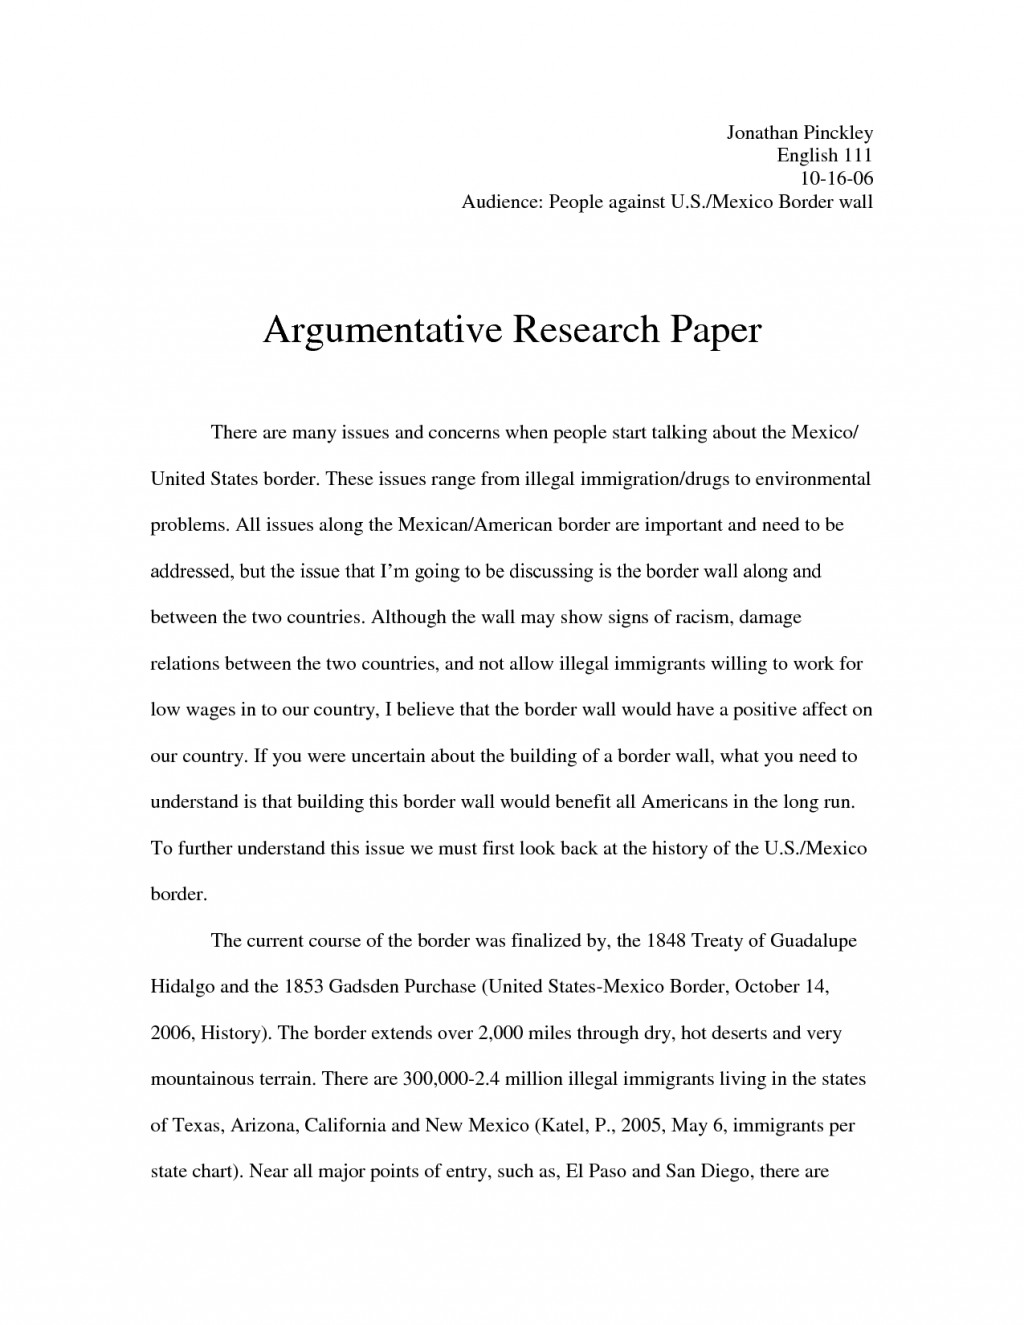 014 Uncategorized Debate20y Argumentative Thesis High School Topics Sentence Starters Outline Worksheet Structure20 For Research Rare A Paper Medical Easy Papers Interesting Large